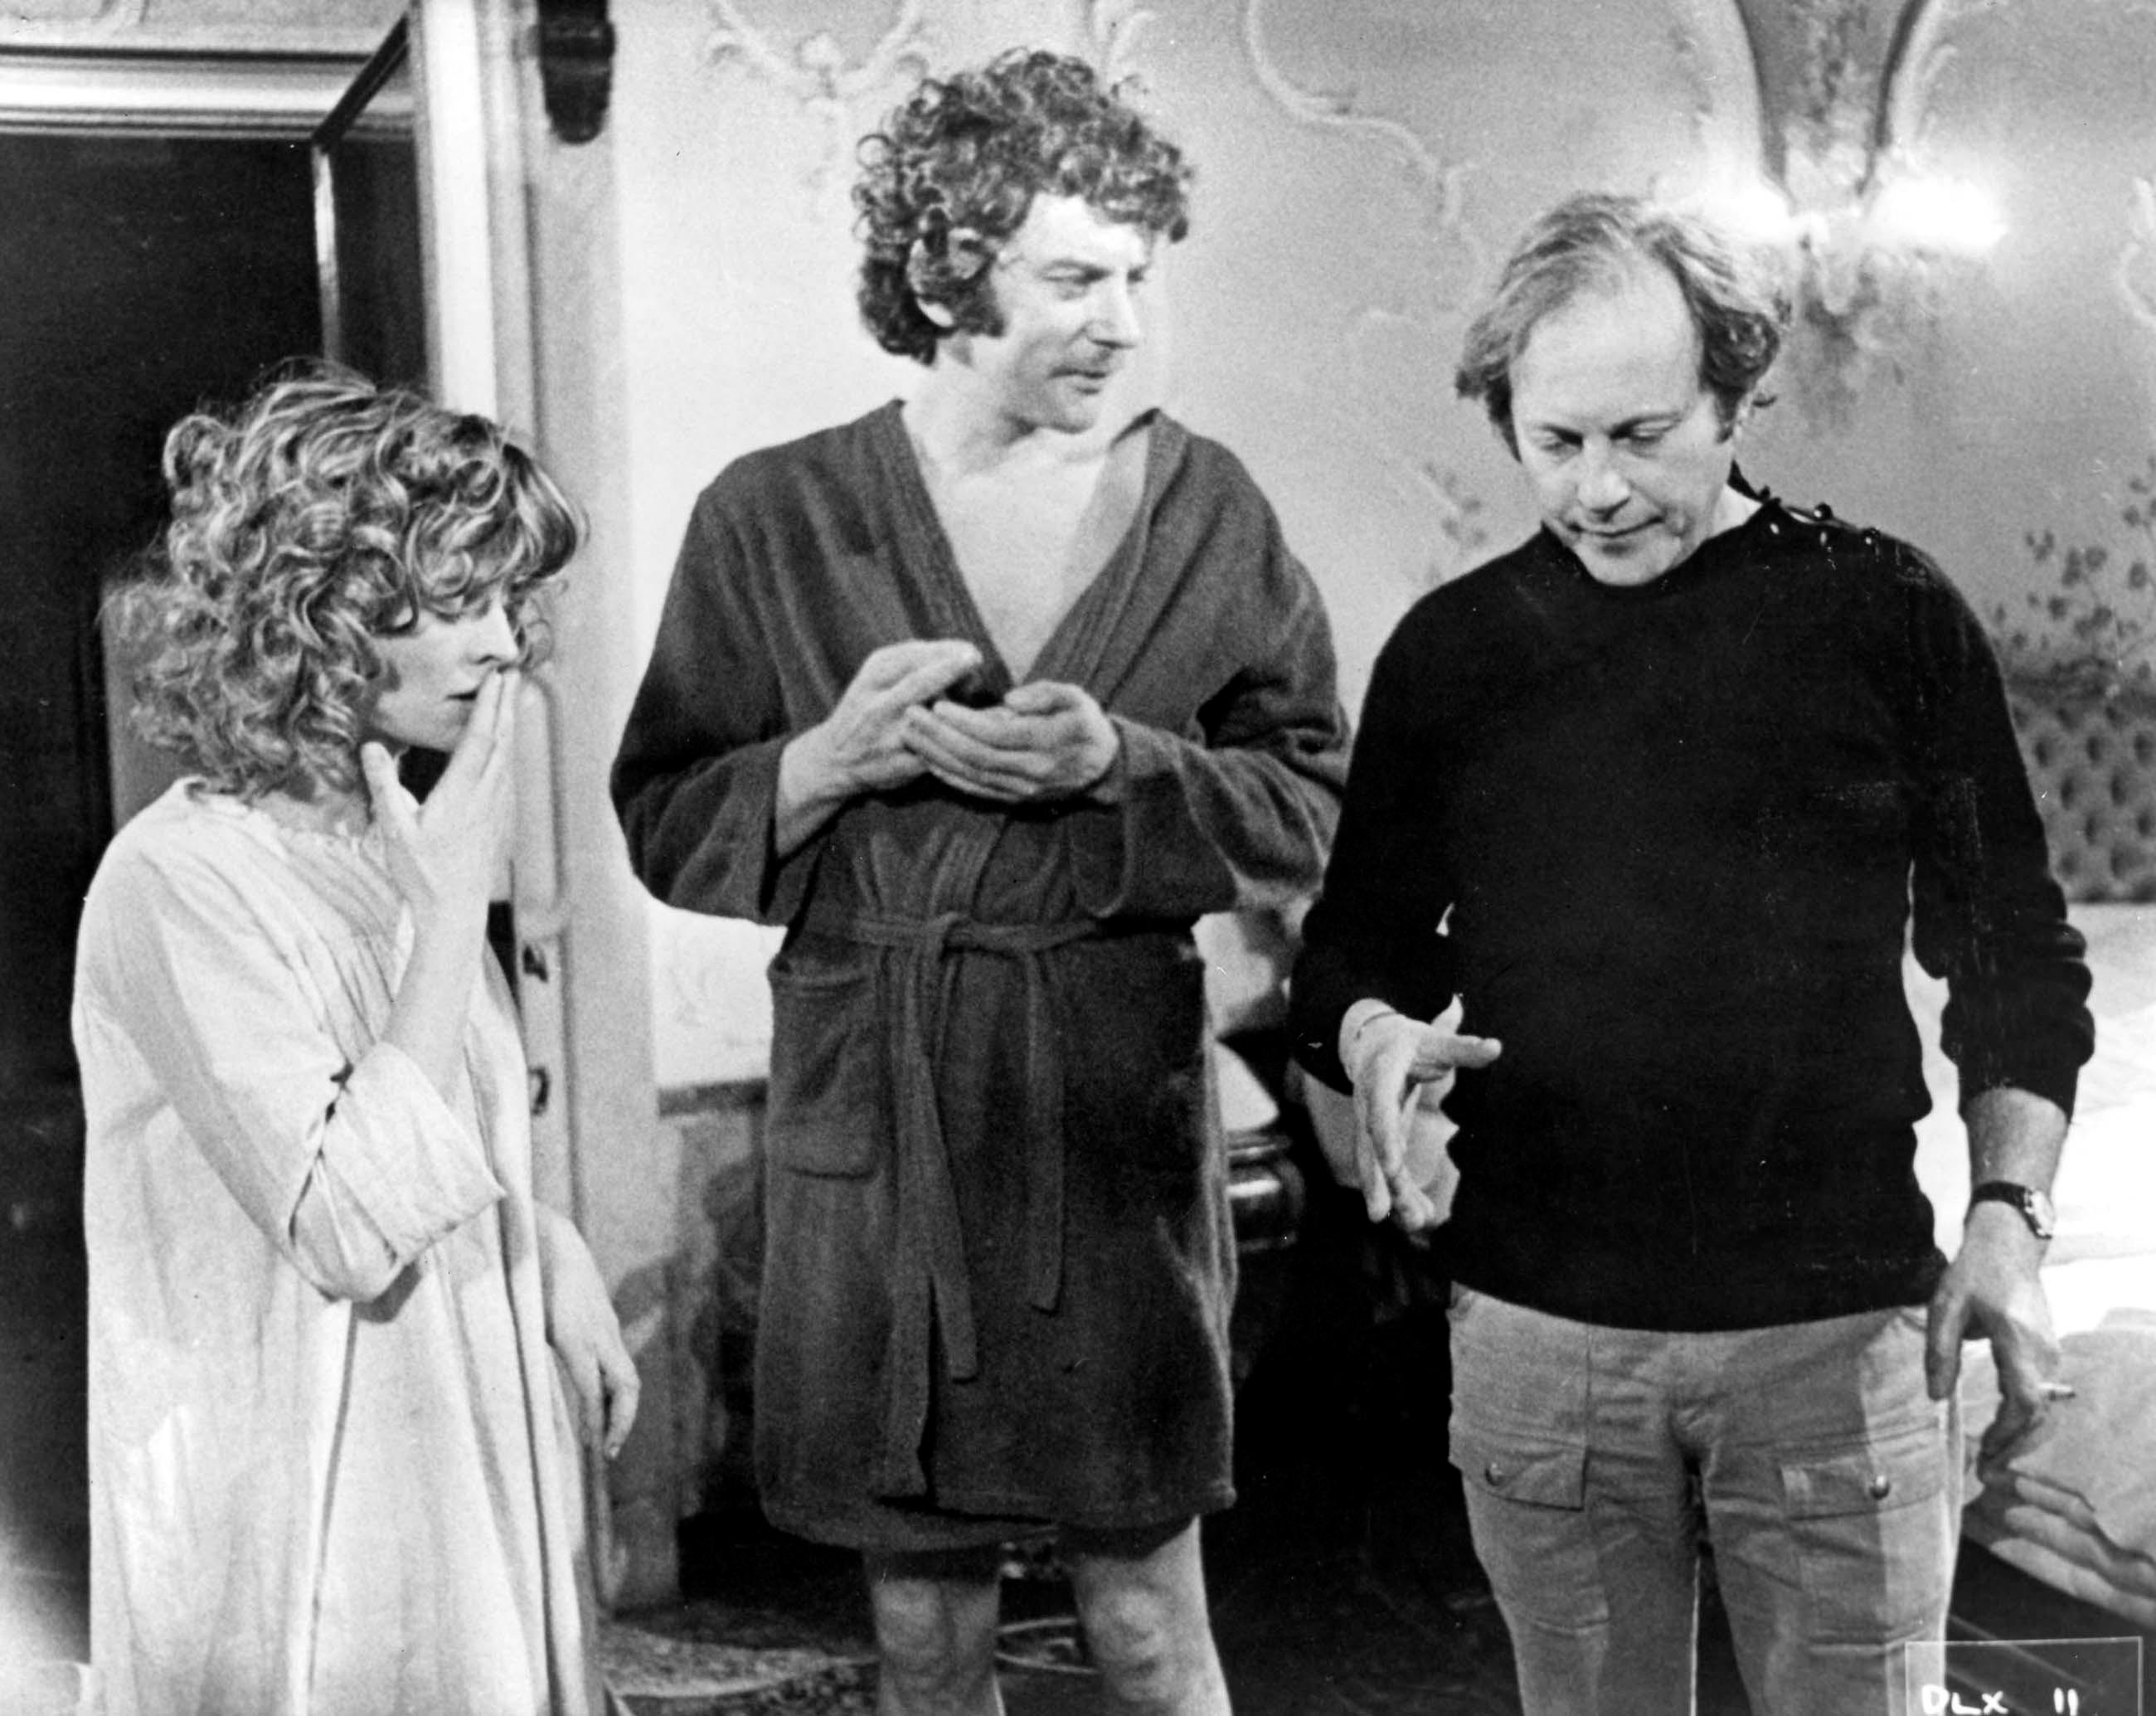 Nicolas Roeg remembered by Donald Sutherland